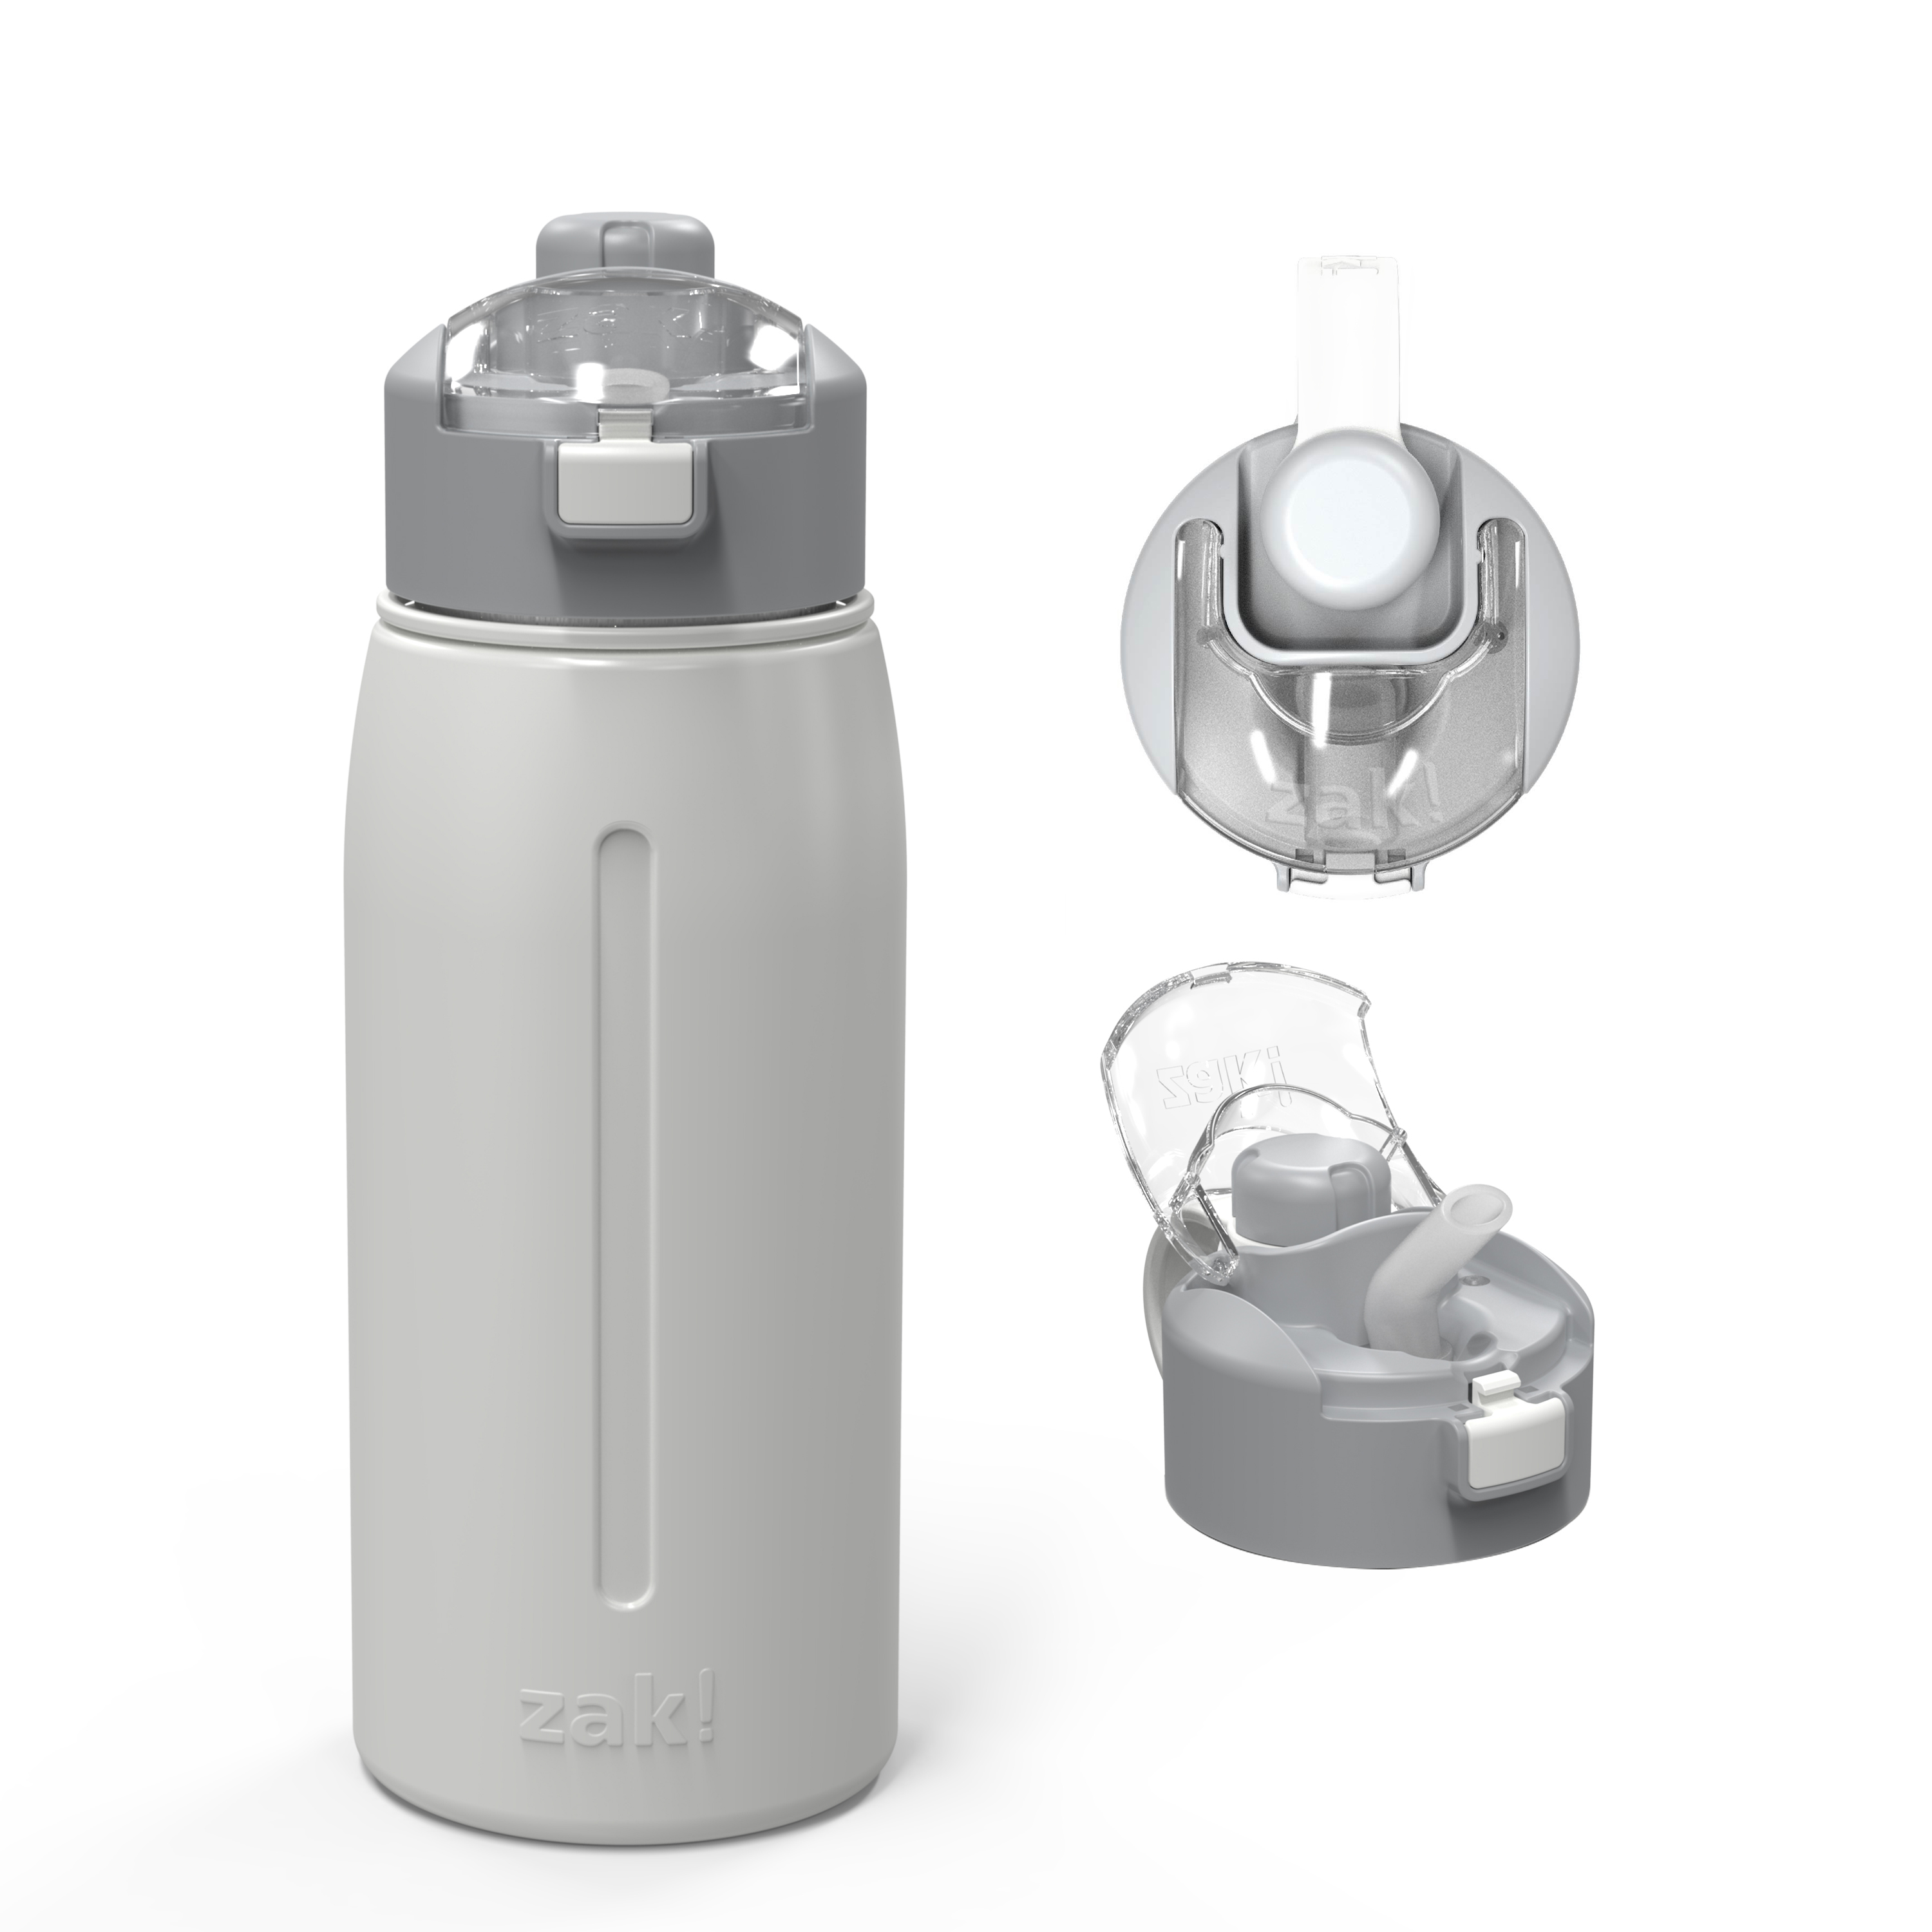 Genesis 24 ounce Vacuum Insulated Stainless Steel Tumbler, Gray image